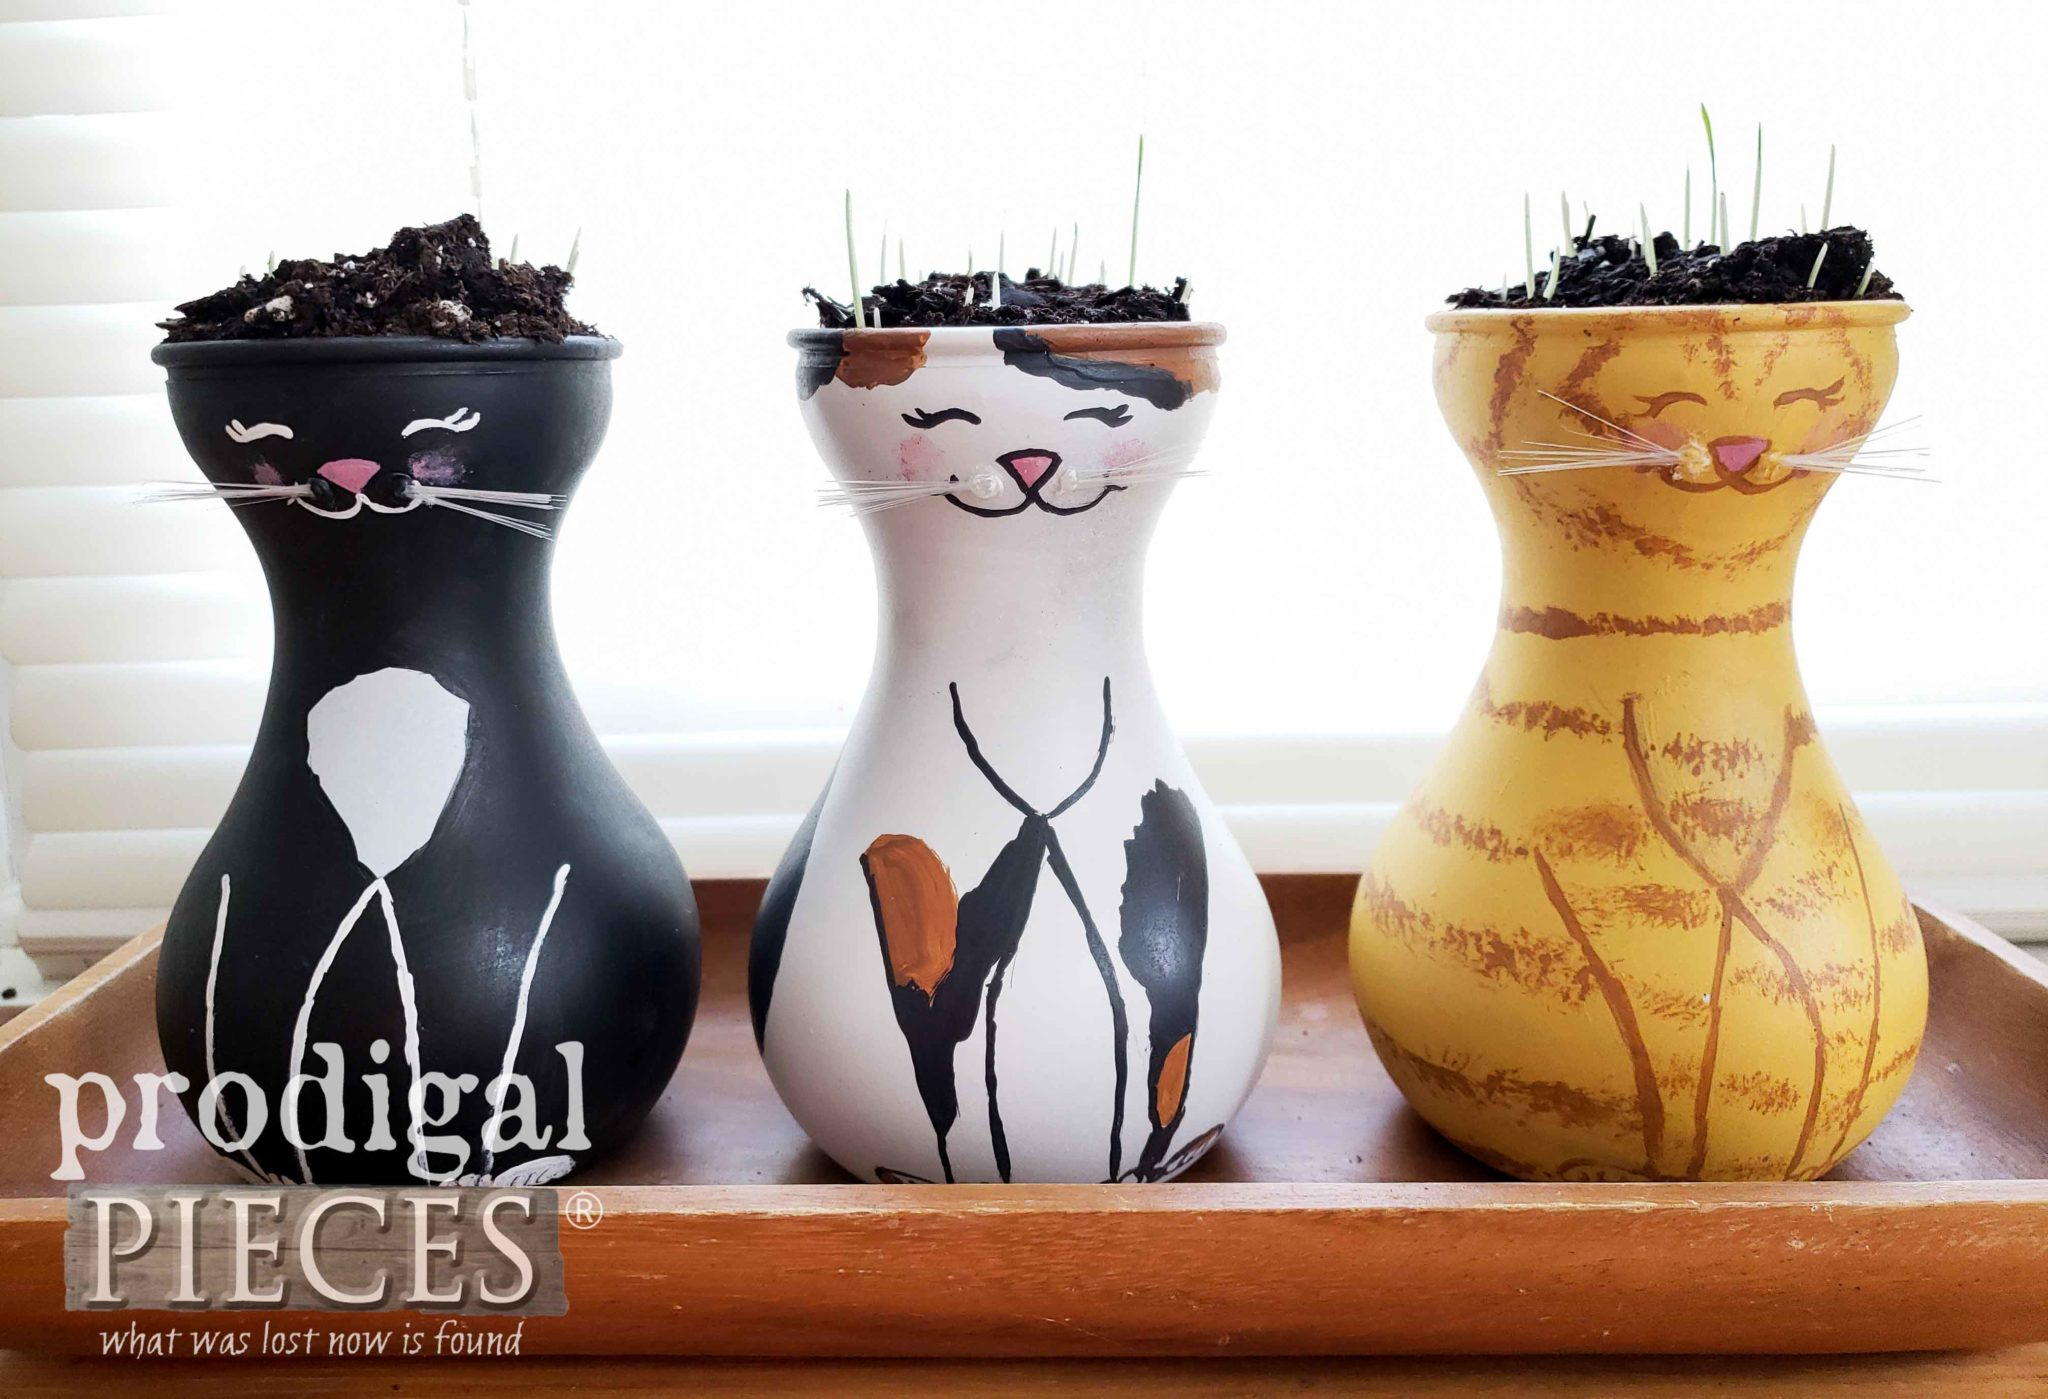 Five Day Cat Grass Growth | DIY Tutorial by Larissa of Prodigal Pieces | prodigalpieces.com #prodigalpieces #diy #home #homedecor #pets #health #food #gardening